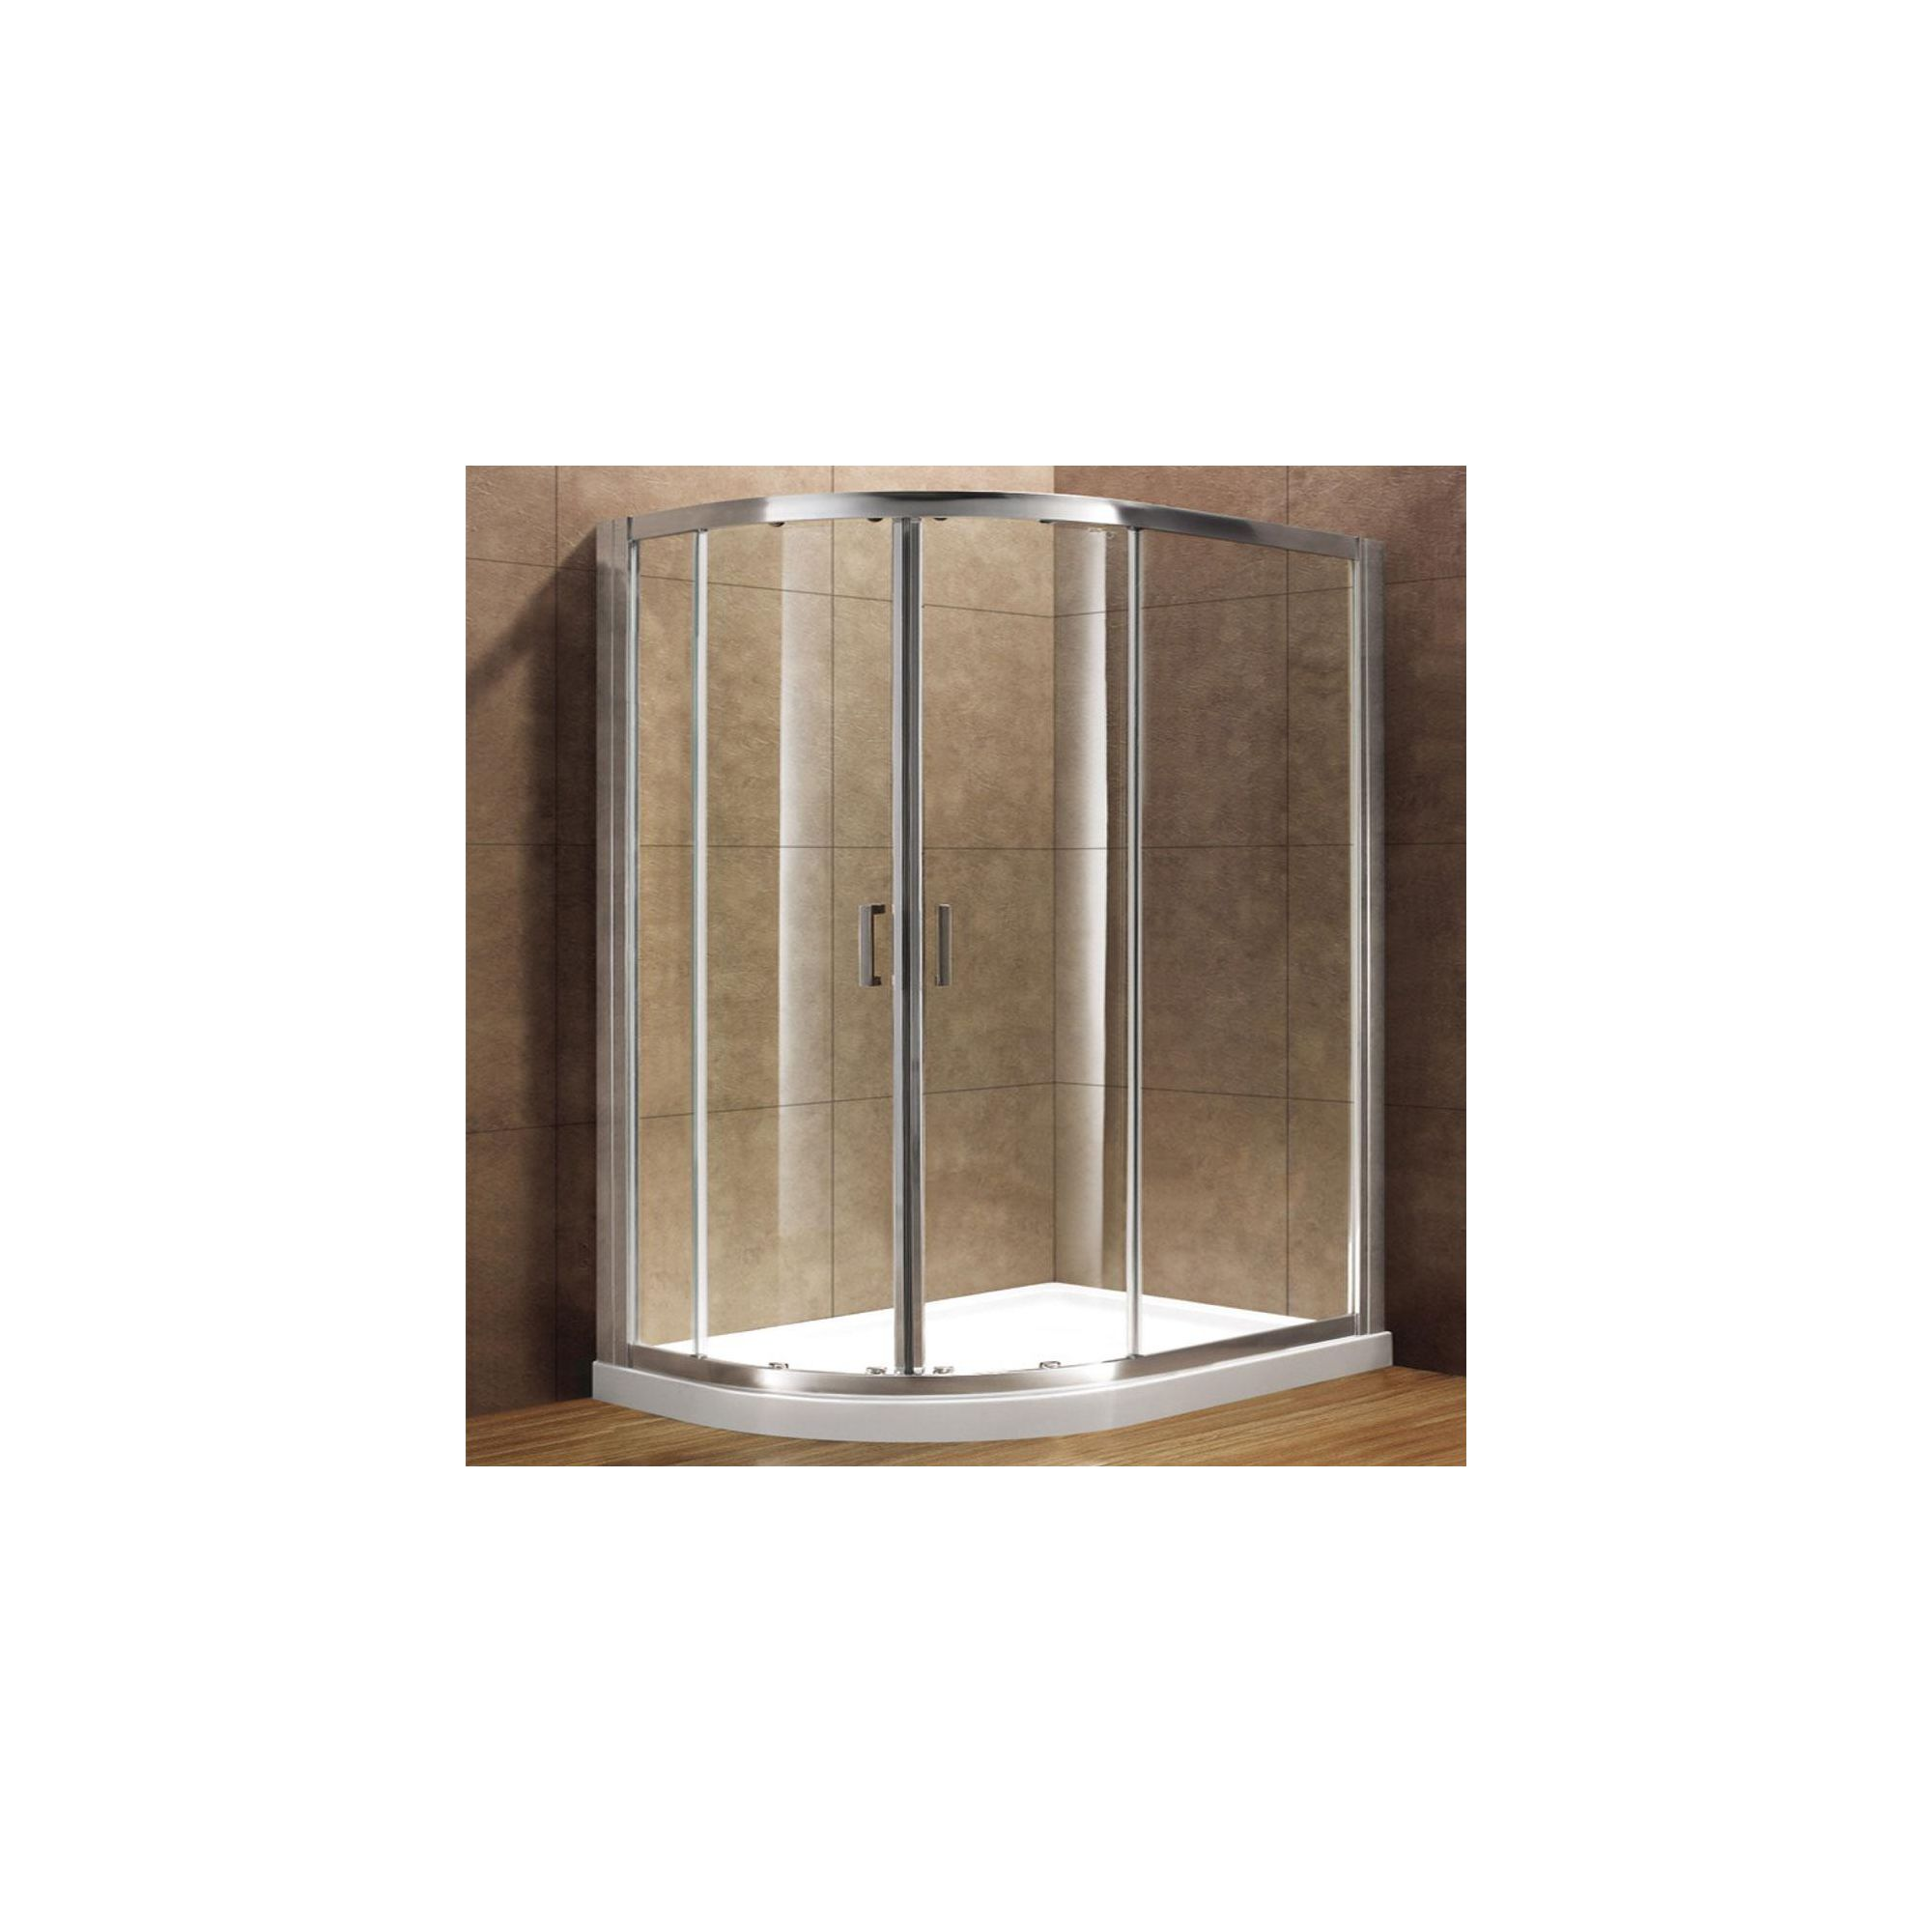 Duchy Premium Double Quadrant Shower Door, 900mm x 900mm, 8mm Glass at Tesco Direct